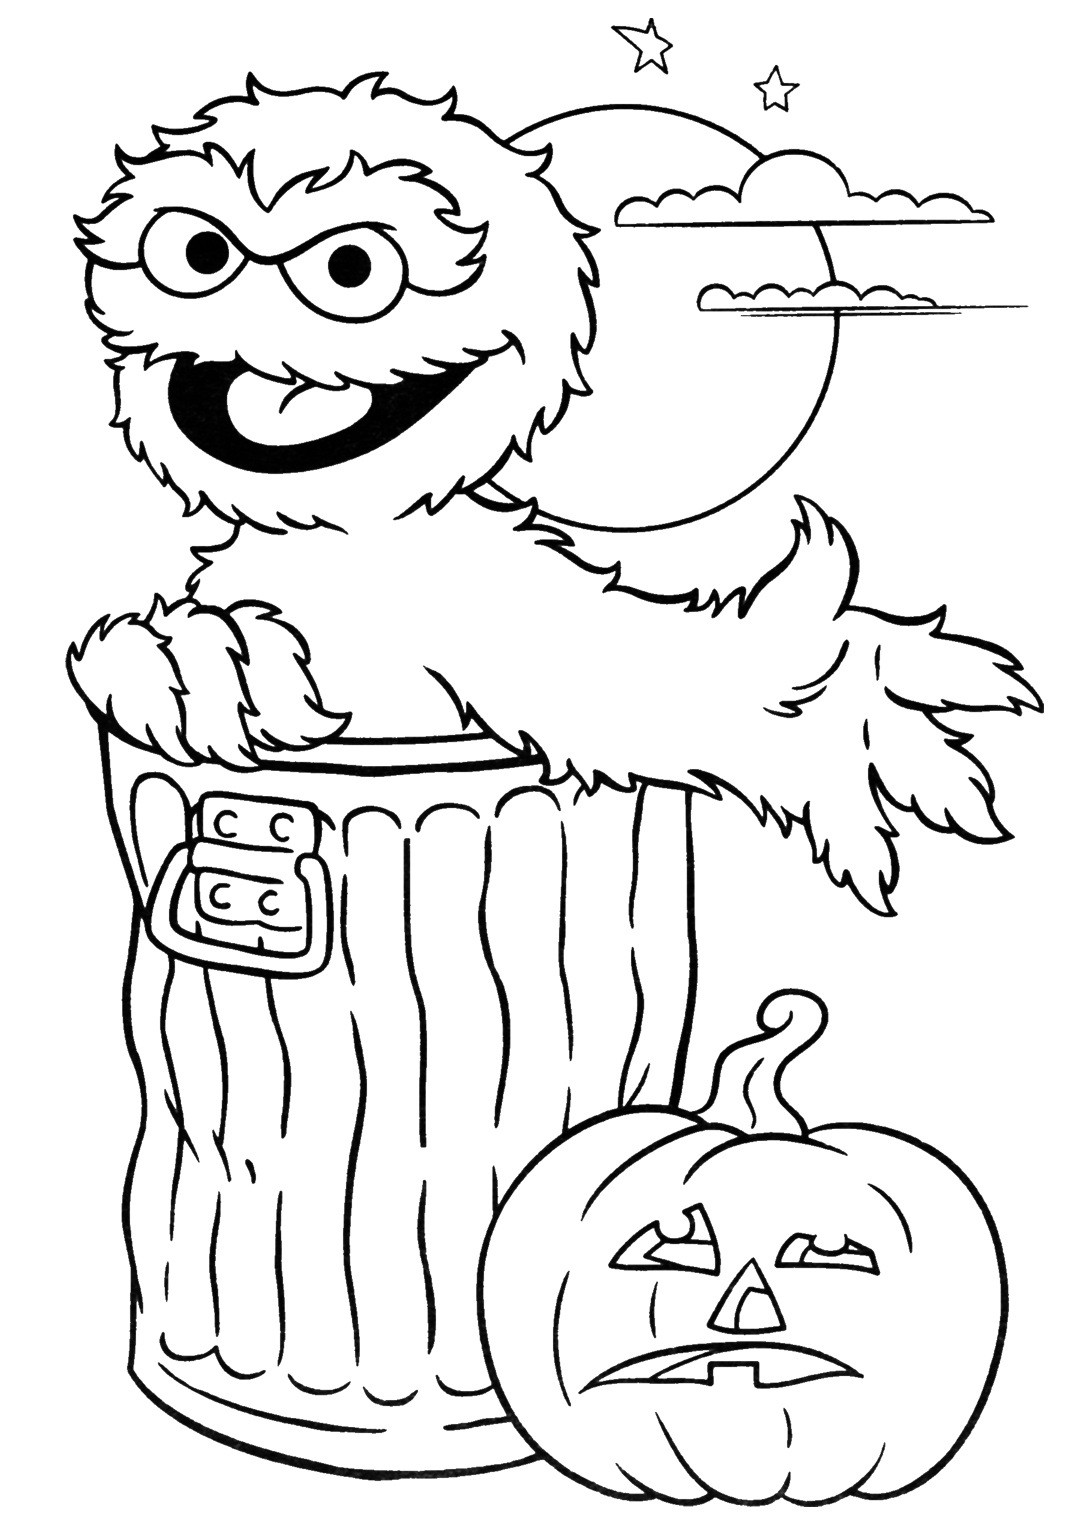 Halloween Coloring Sheets For Kids  24 Free Halloween Coloring Pages for Kids Honey Lime